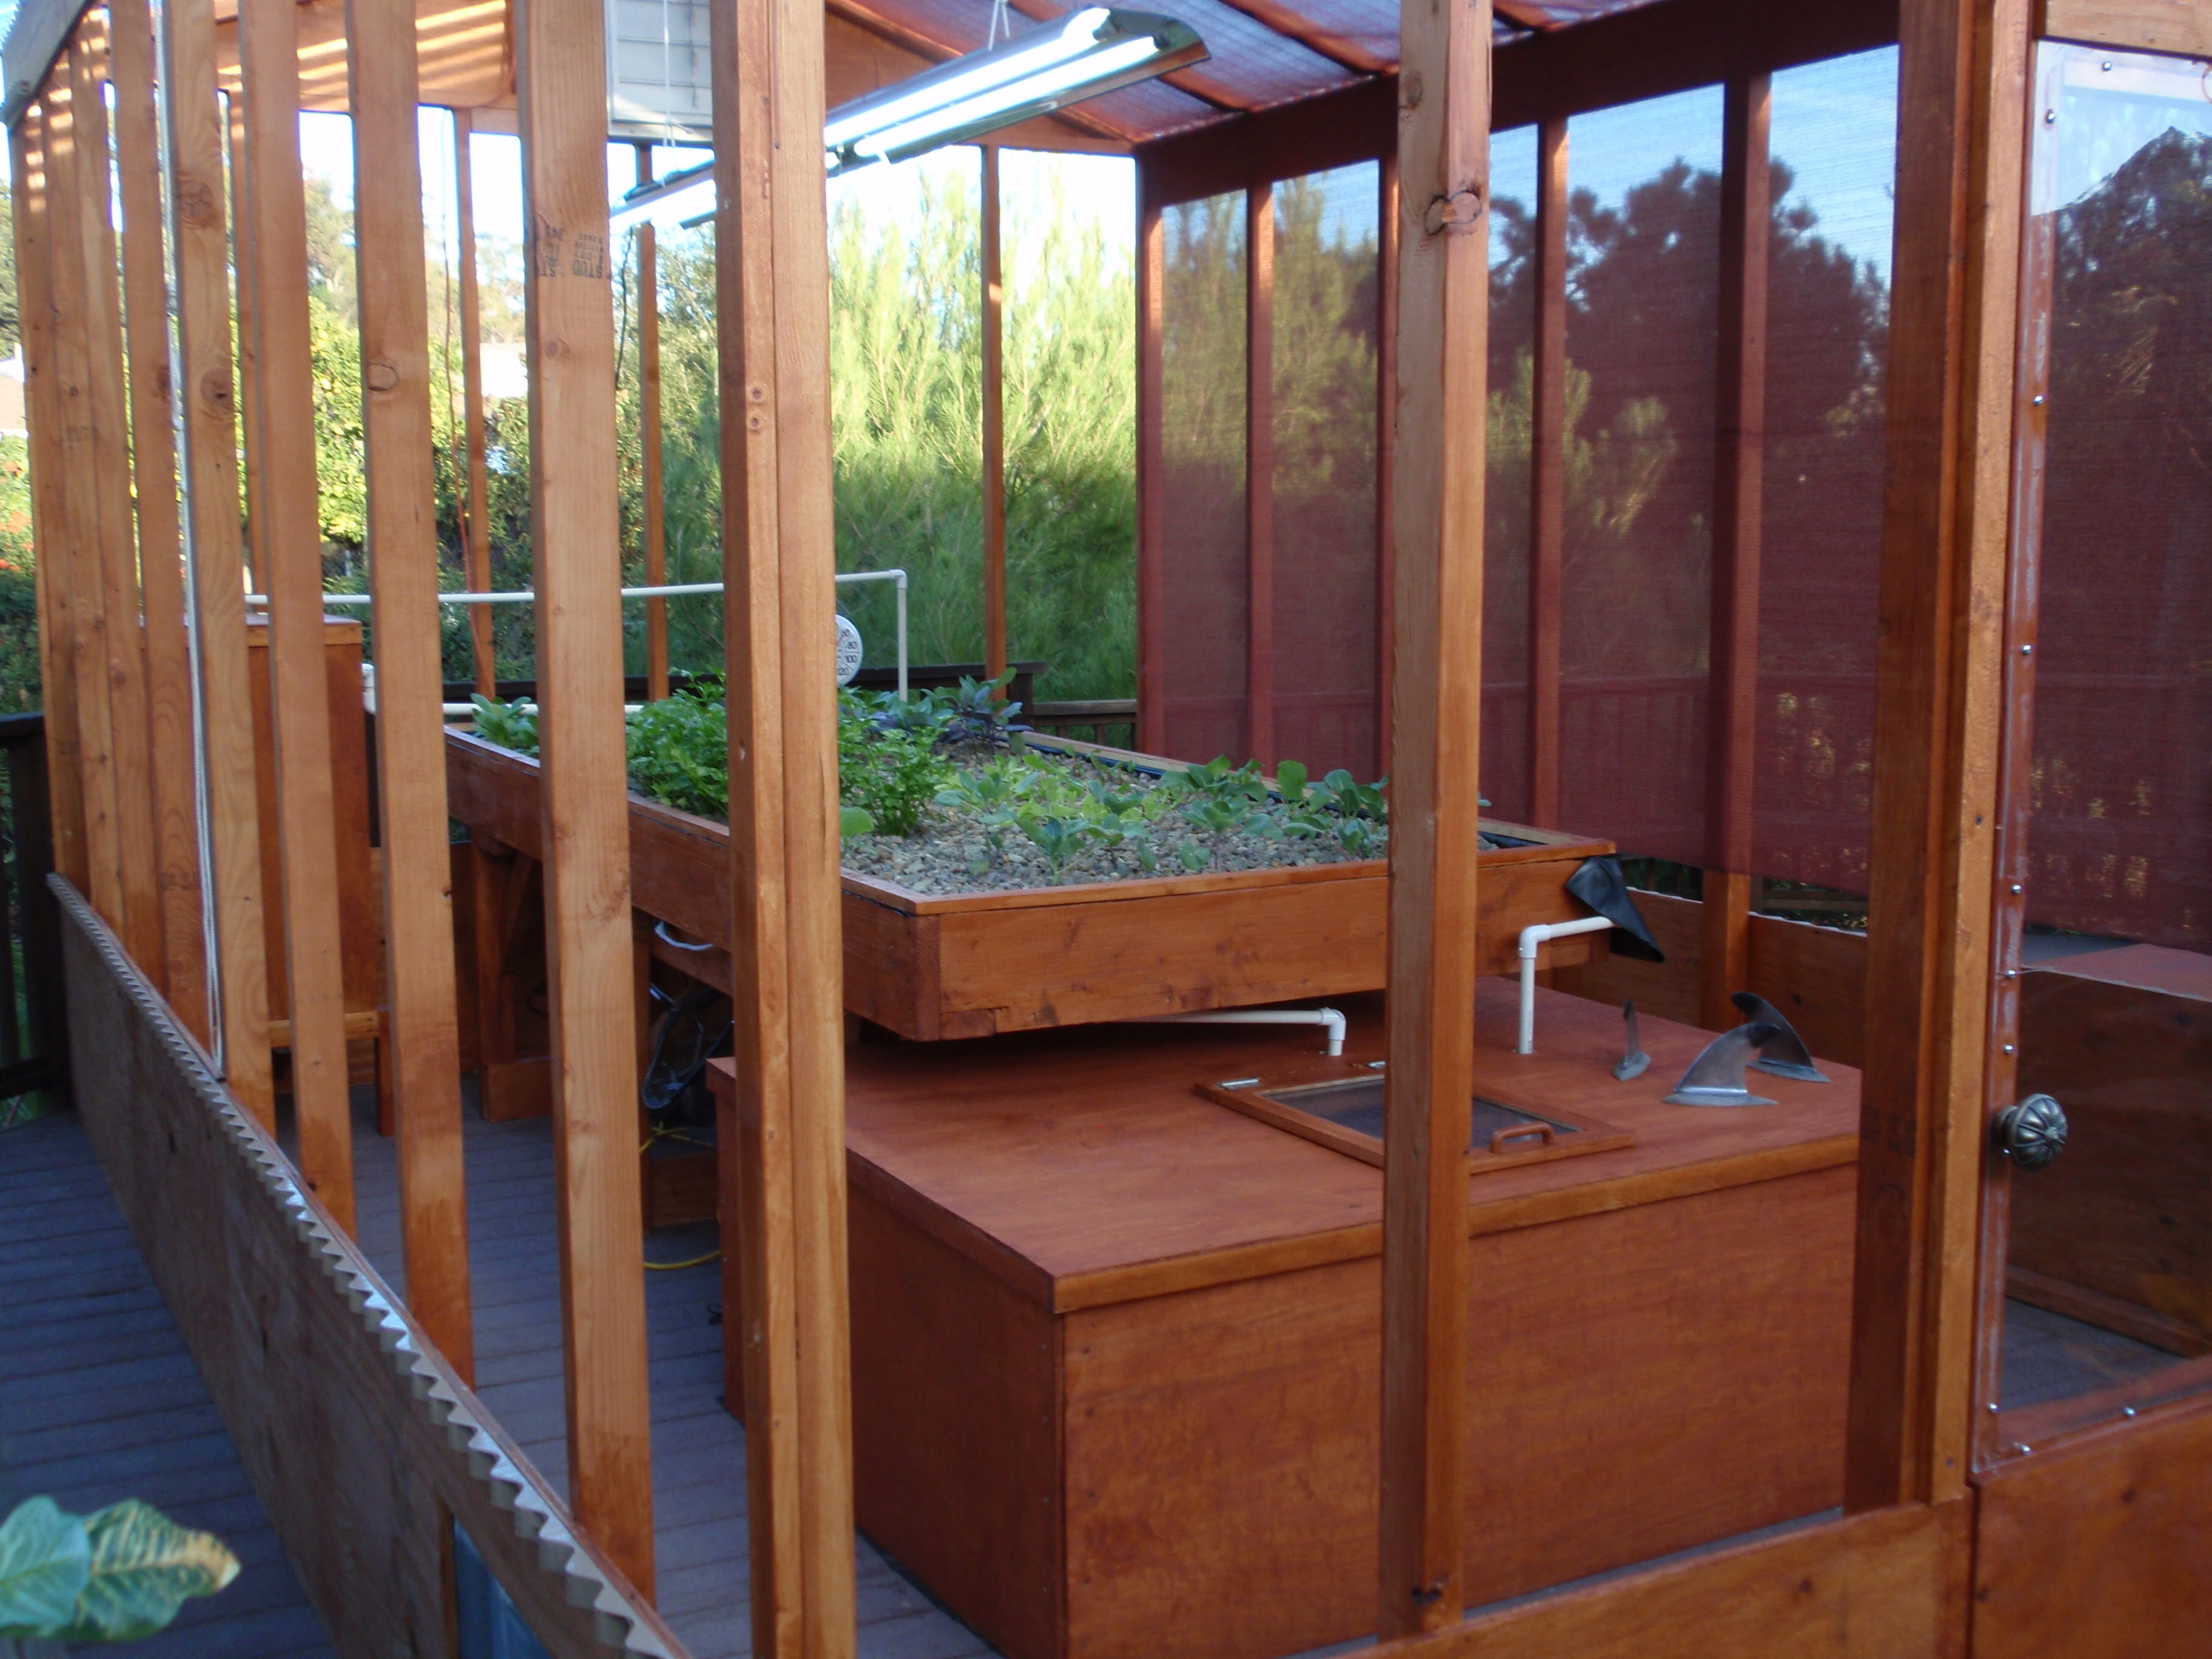 Aquaponics Systems for Sale